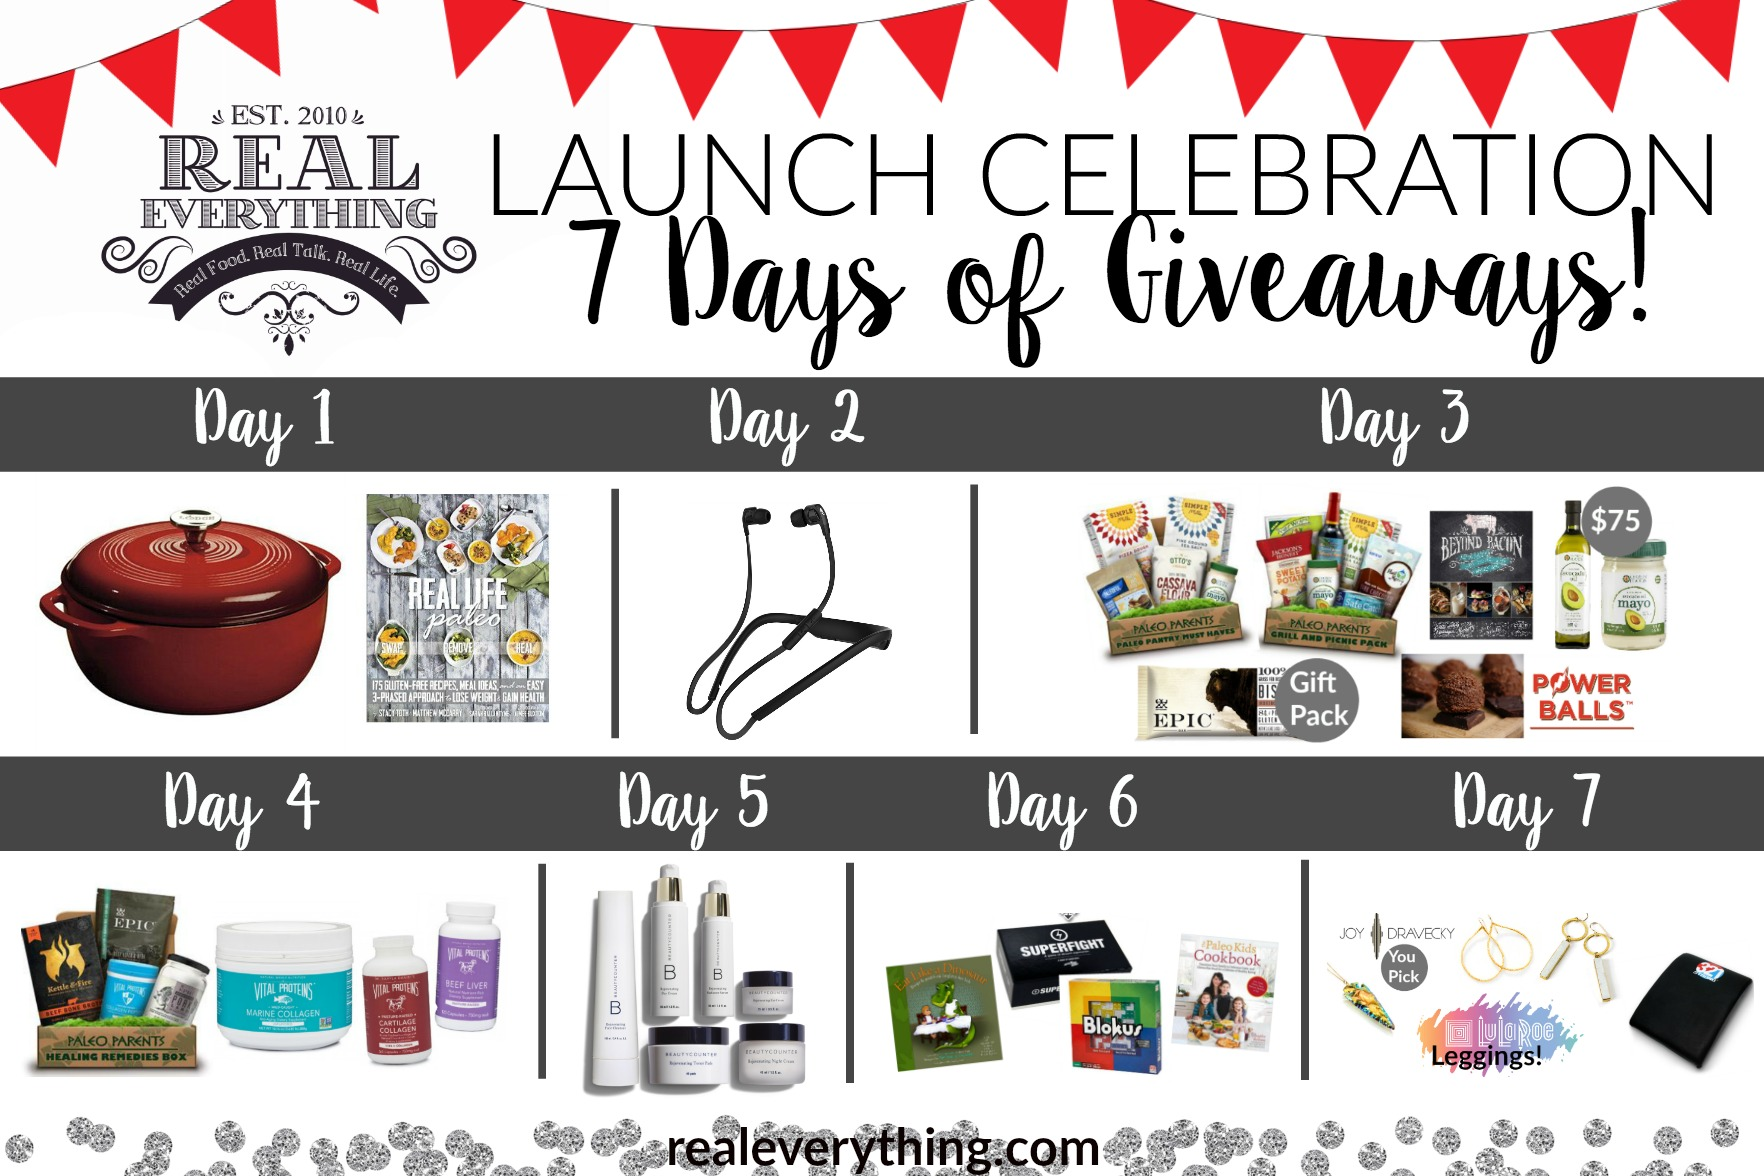 re-real-everything-7-days-giveaways-final